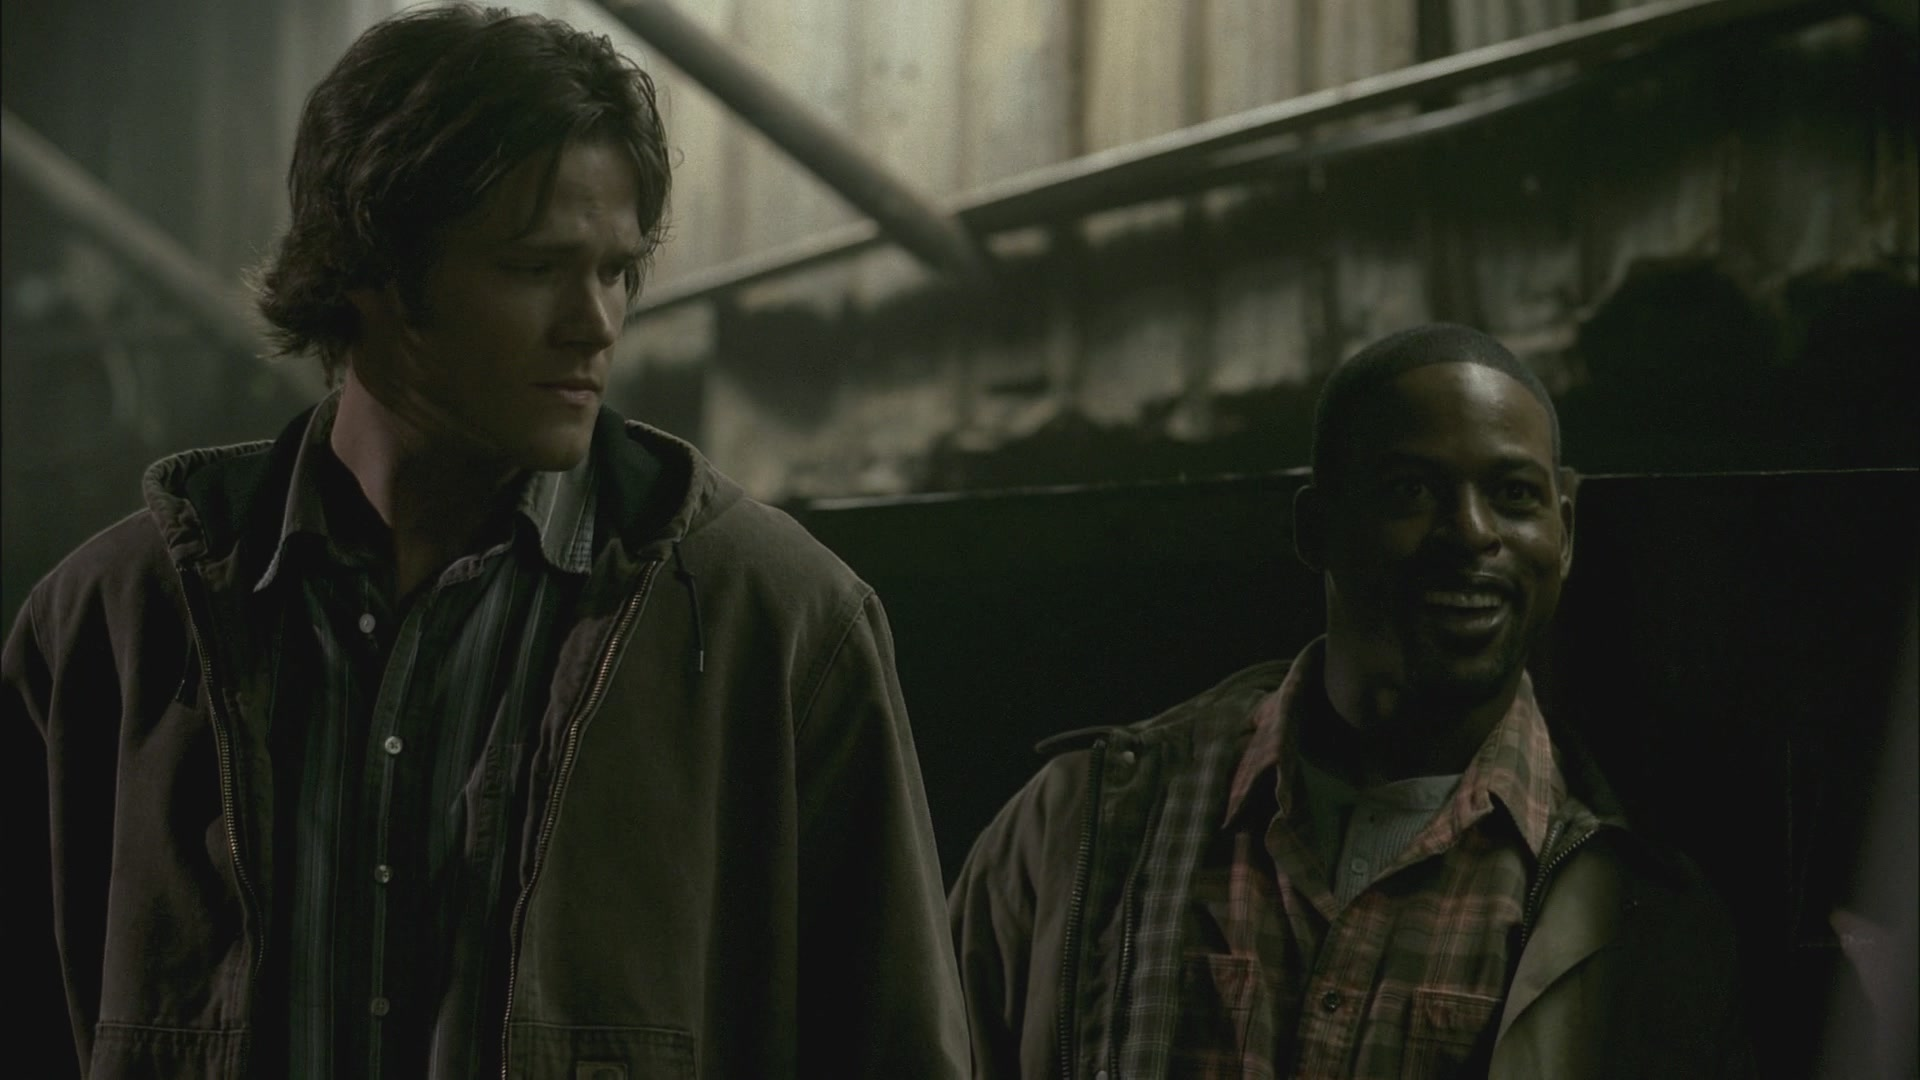 https://thewinchesterfamilybusiness.com/images/CaptionThis/SPN_02x03.jpg